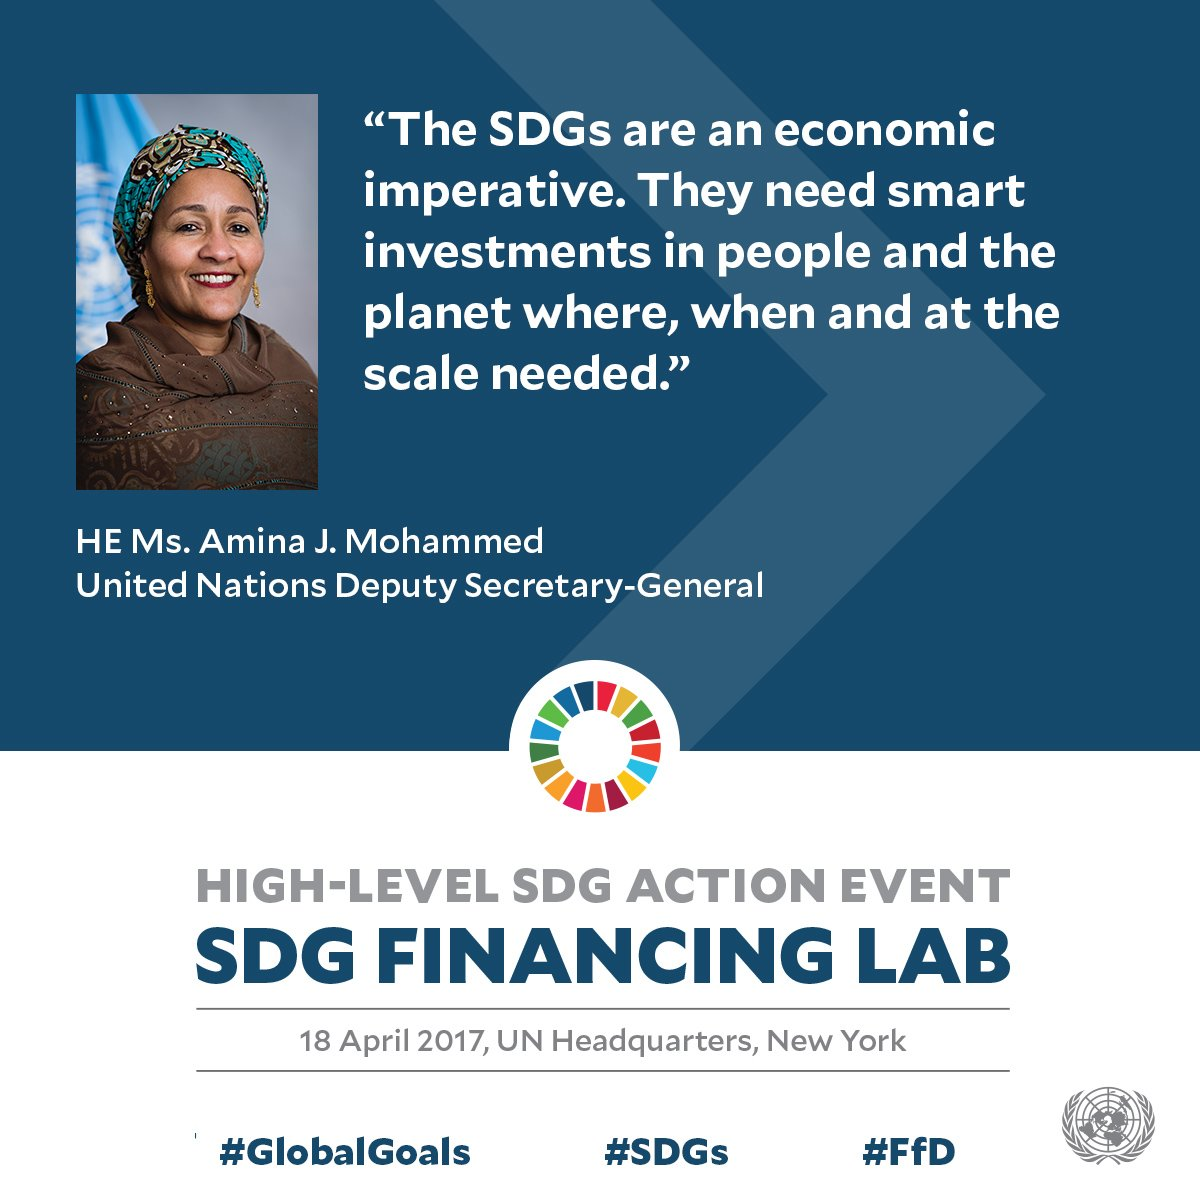 """The #SDGs are an economic imperative"" - UN Deputy-Secretary General at #SDGFinancing lab. Watch live at https://t.co/1Wh5hlXHp8 #ffd https://t.co/zzSUxE6rLK"